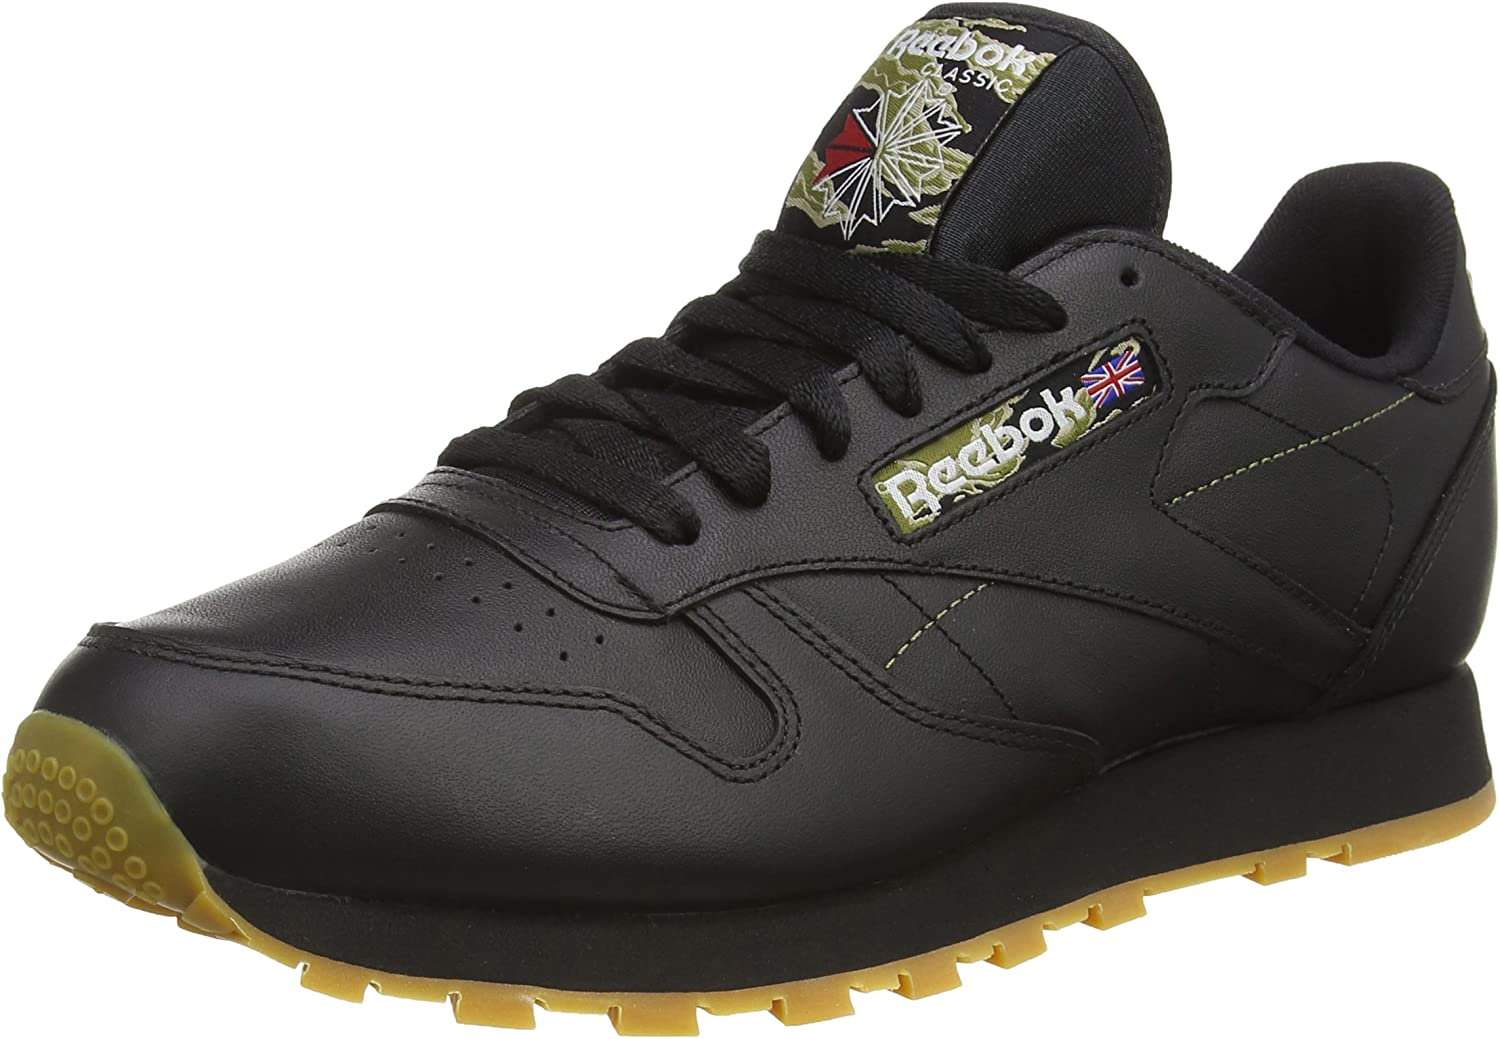 famosa marca de diseñador Boutique en ligne mitad de descuento Reebok Men's Cl Leather Tiger Camo Low-Top Sneakers, Black (Black/Warm  Olive/Oatmeal/RBK Rubber Gum/White), 13 UK: Amazon.co.uk: Shoes & Bags